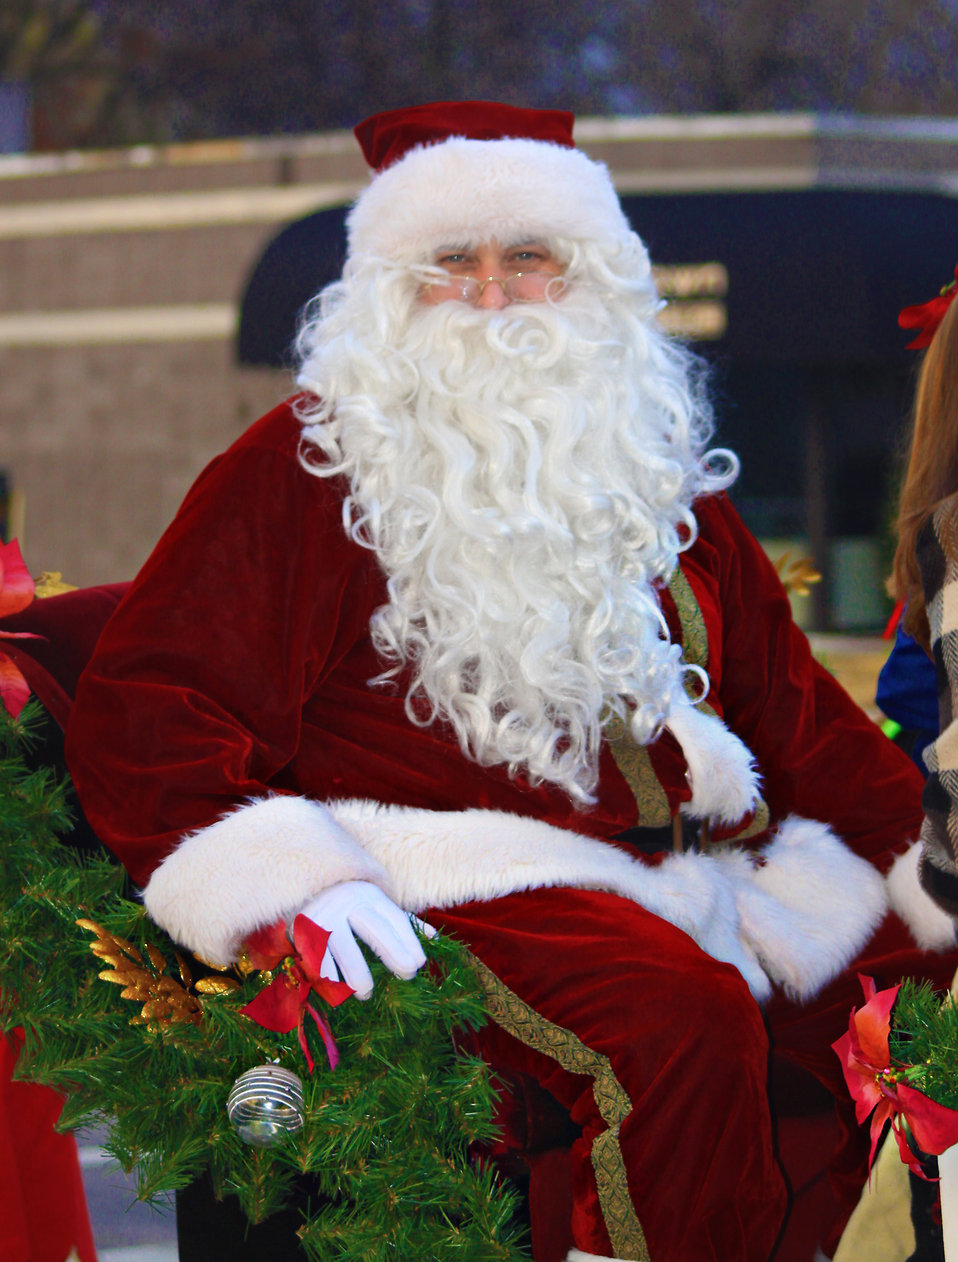 Santa Claus at a Christmas parade : Free Stock Photo